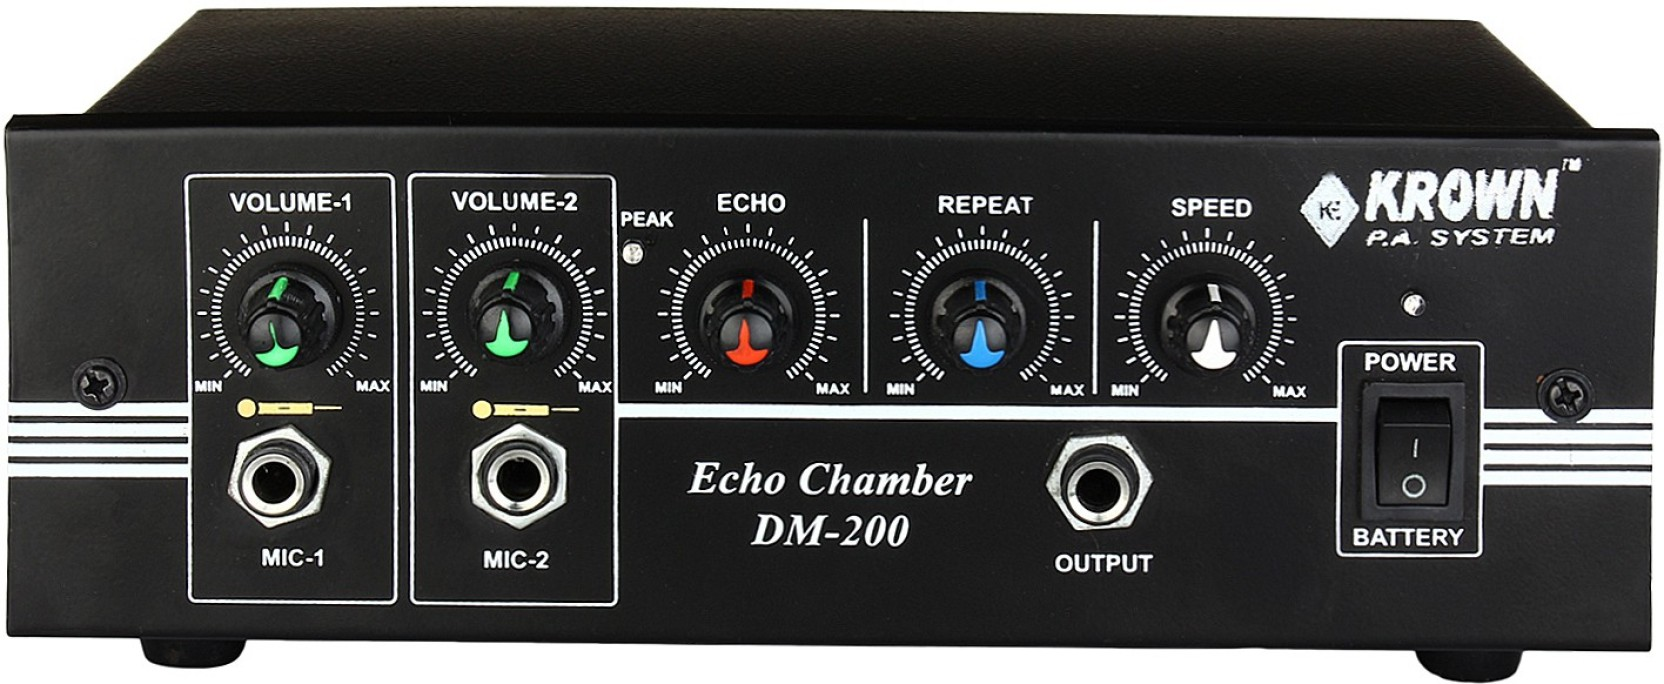 Krown Dm 200 2 Channel Echo Chamber Effect Processor Analog Sound Stereo Mixer For Microphone With Channels Home